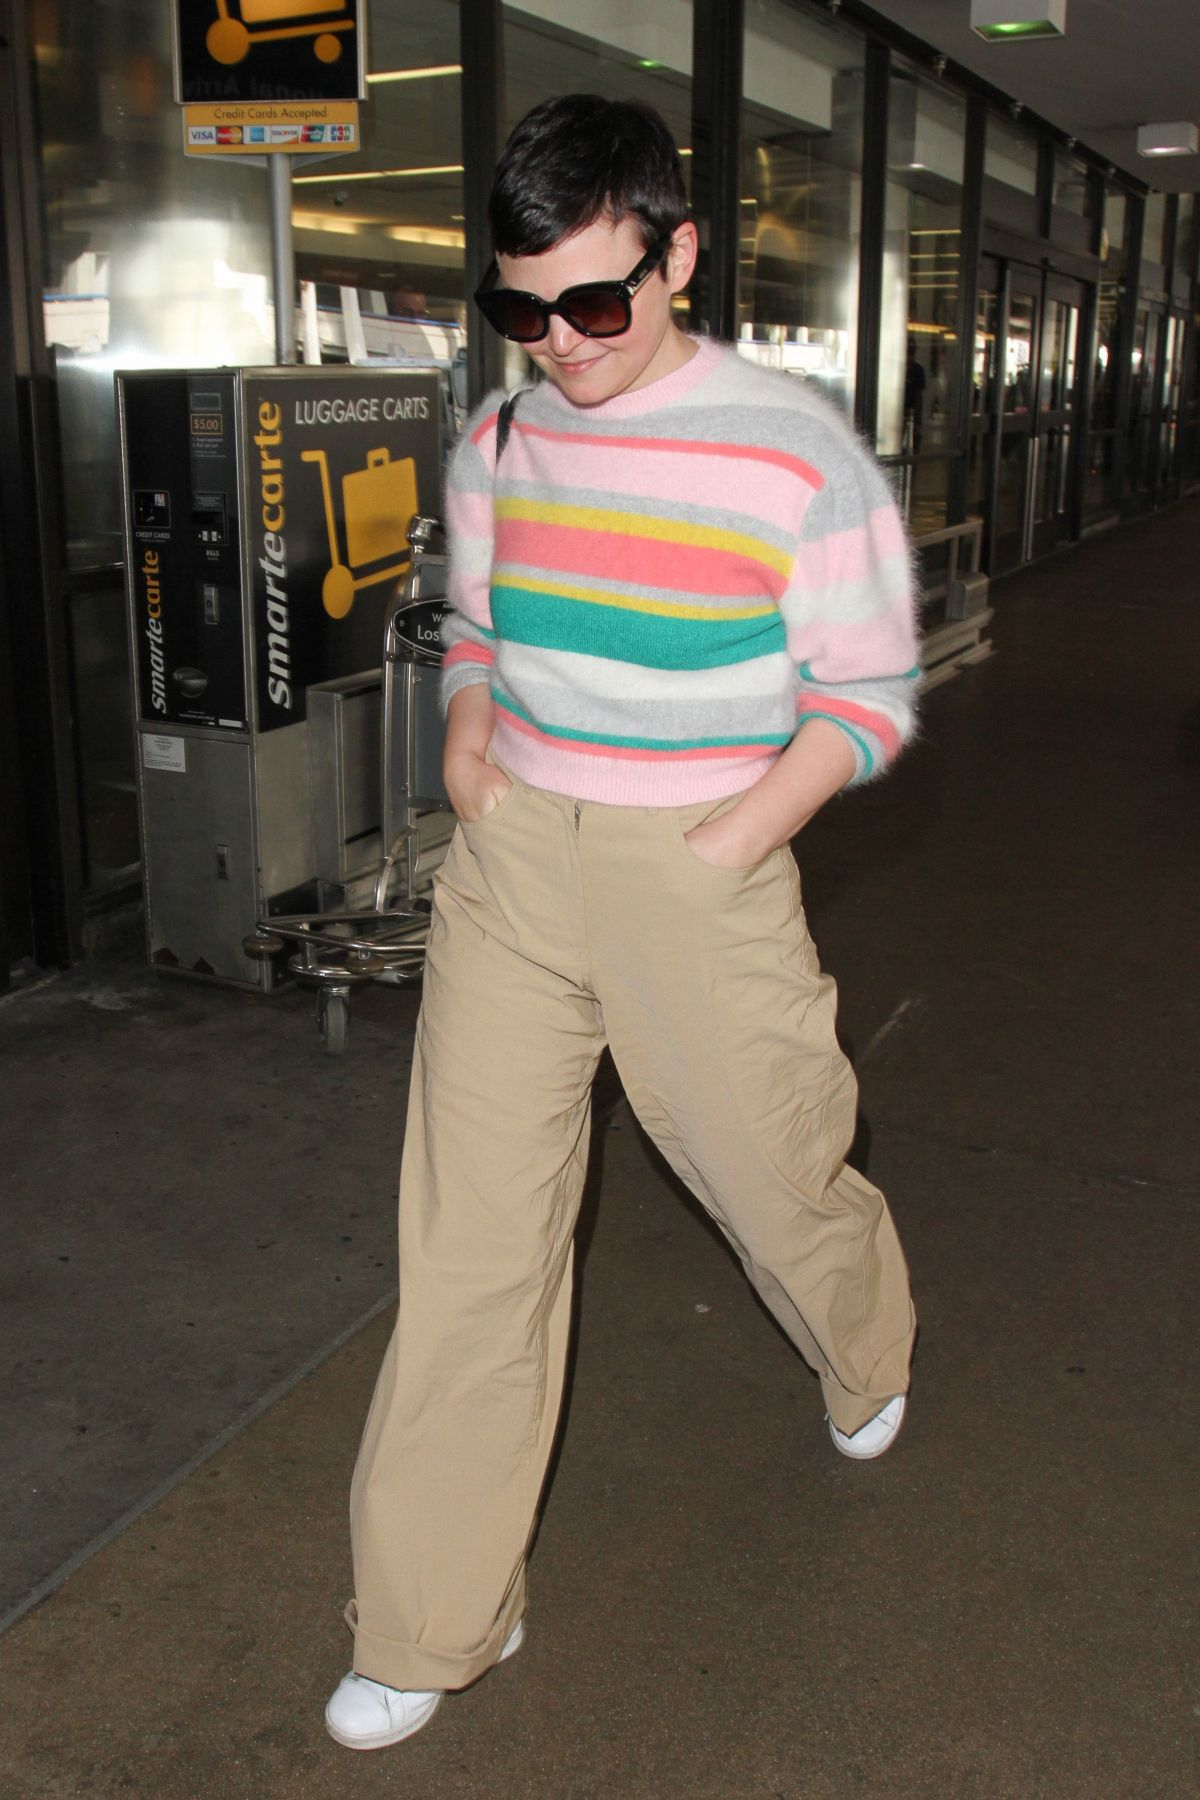 GINNIFER GOODWIN at LAX Airport in Los Angeles 03/17/2017